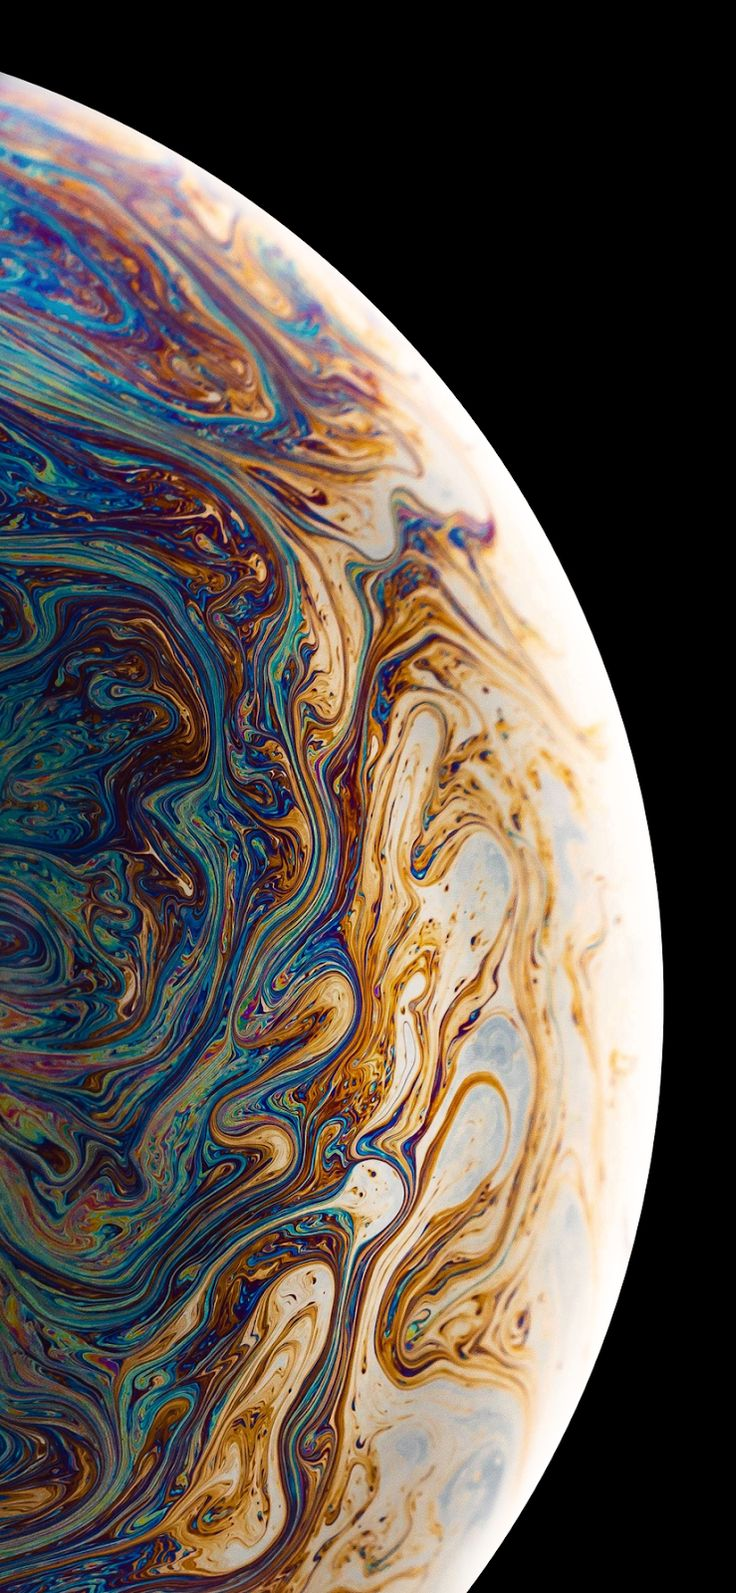 iPhone 11 Wallpaper HD 4k Download in 2020 | Wallpaper ...